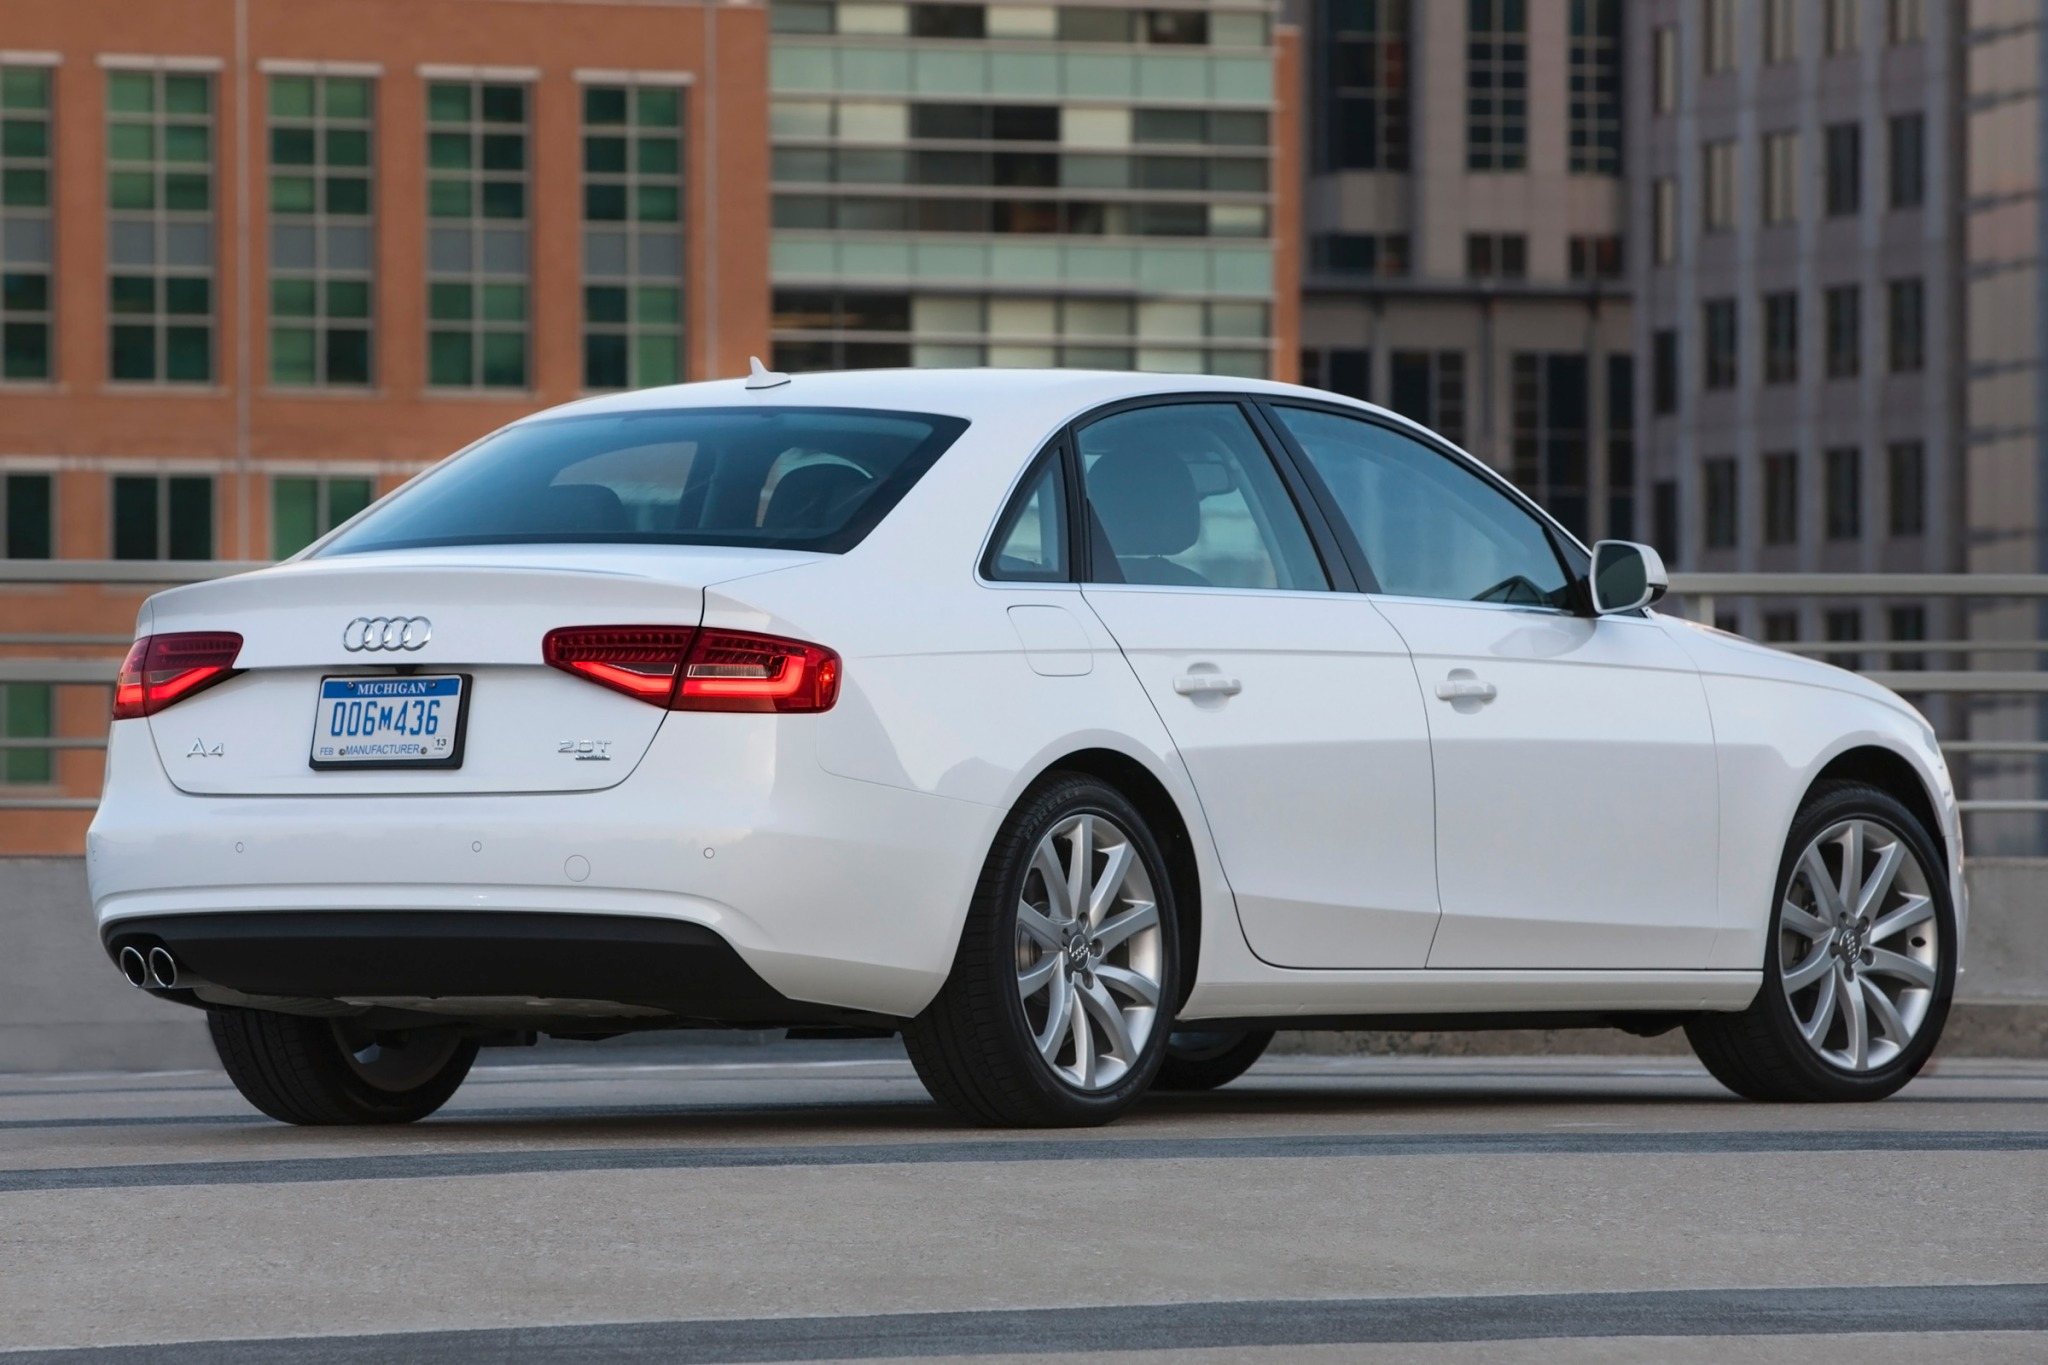 2013 audi a4 - information and photos - zombiedrive